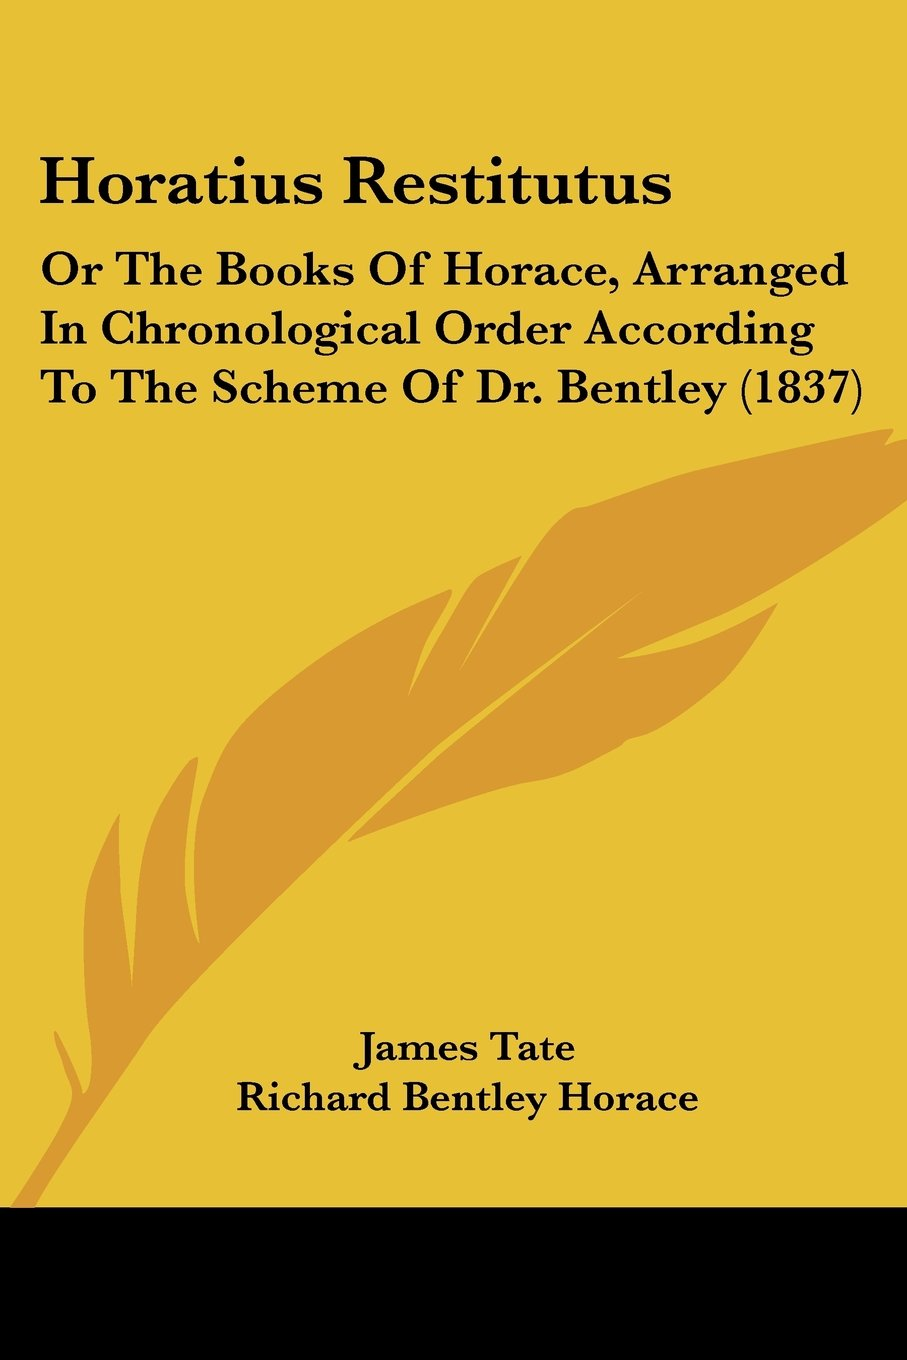 Horatius Restitutus: Or The Books Of Horace, Arranged In Chronological Order According To The Scheme Of Dr. Bentley (1837) pdf epub